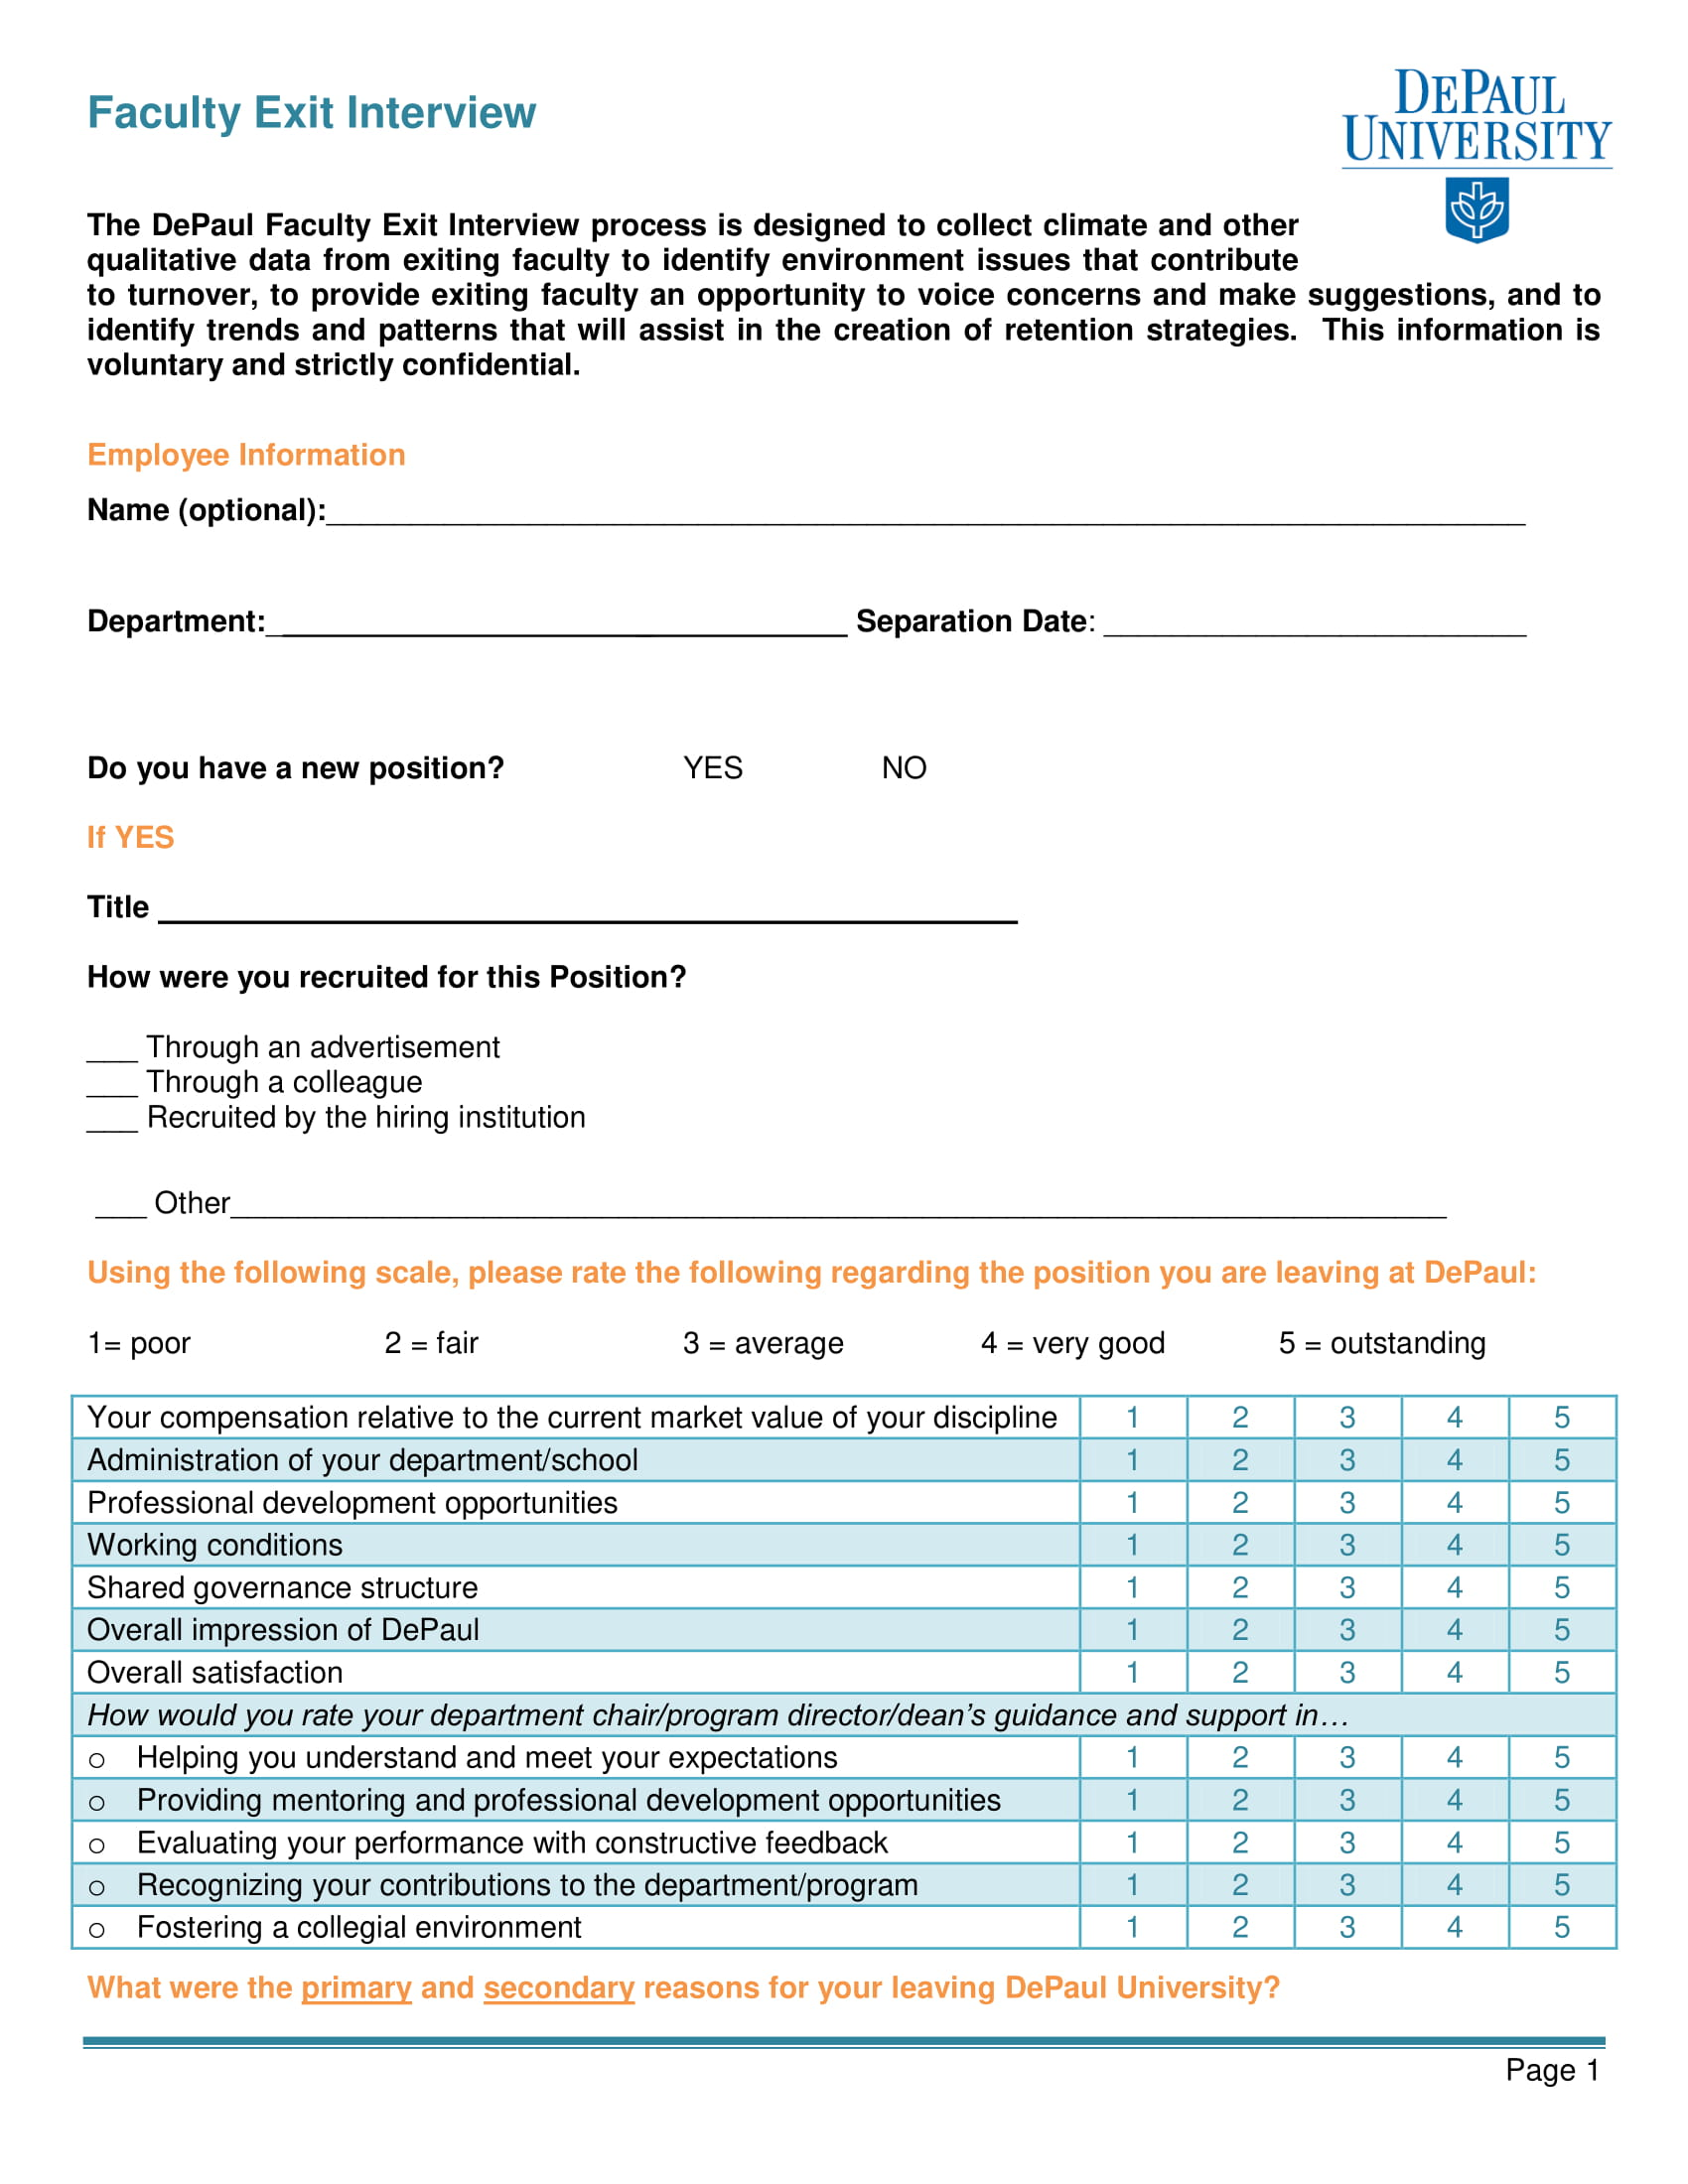 10+ Employee Exit Questionnaire Examples - PDF | Examples